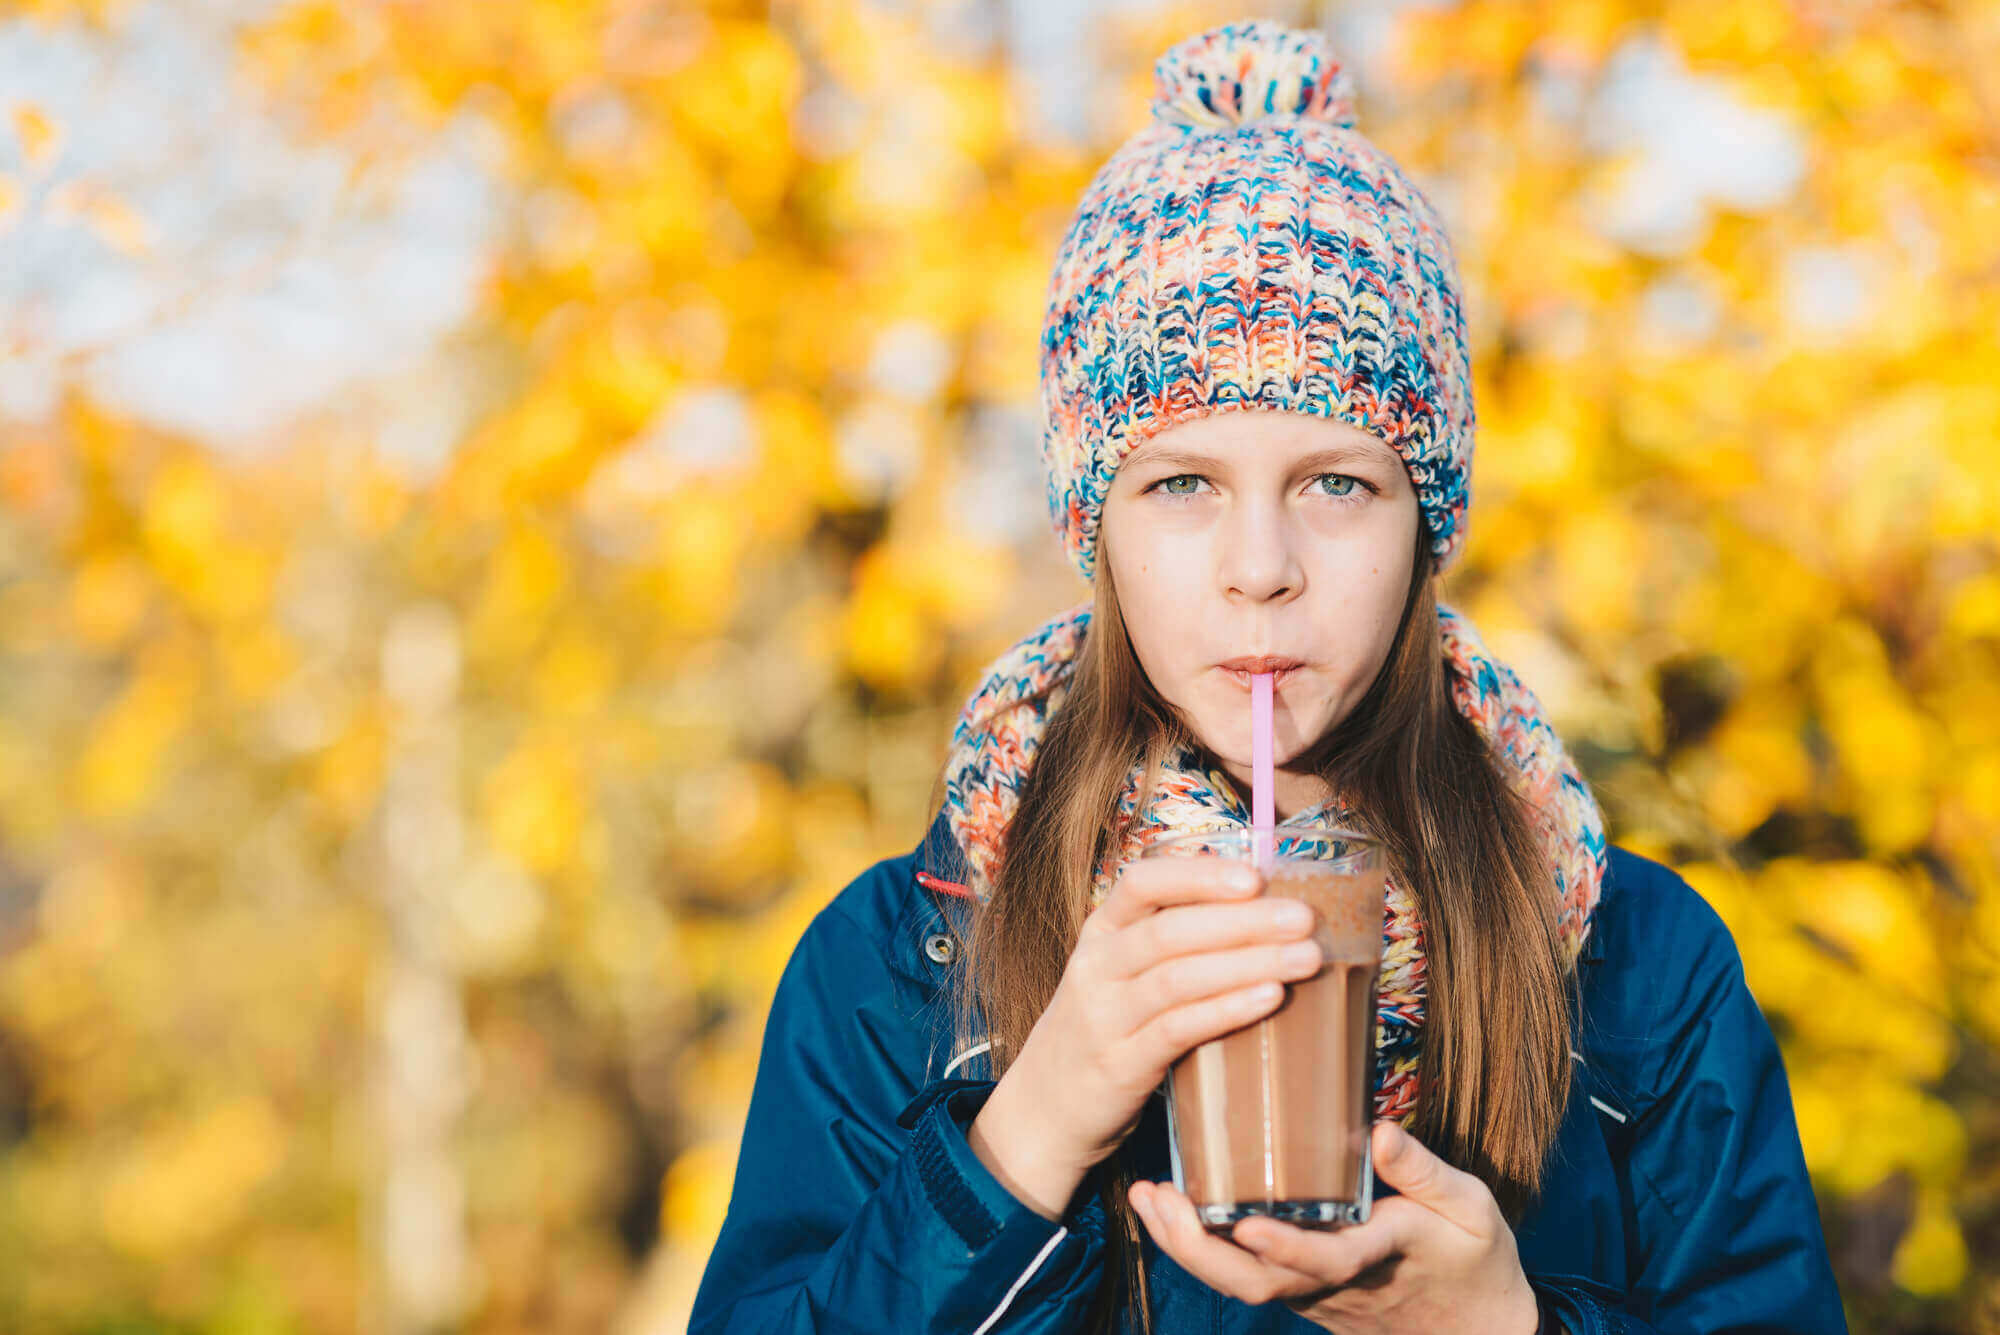 8 reasons you need more chocolate milk in your life